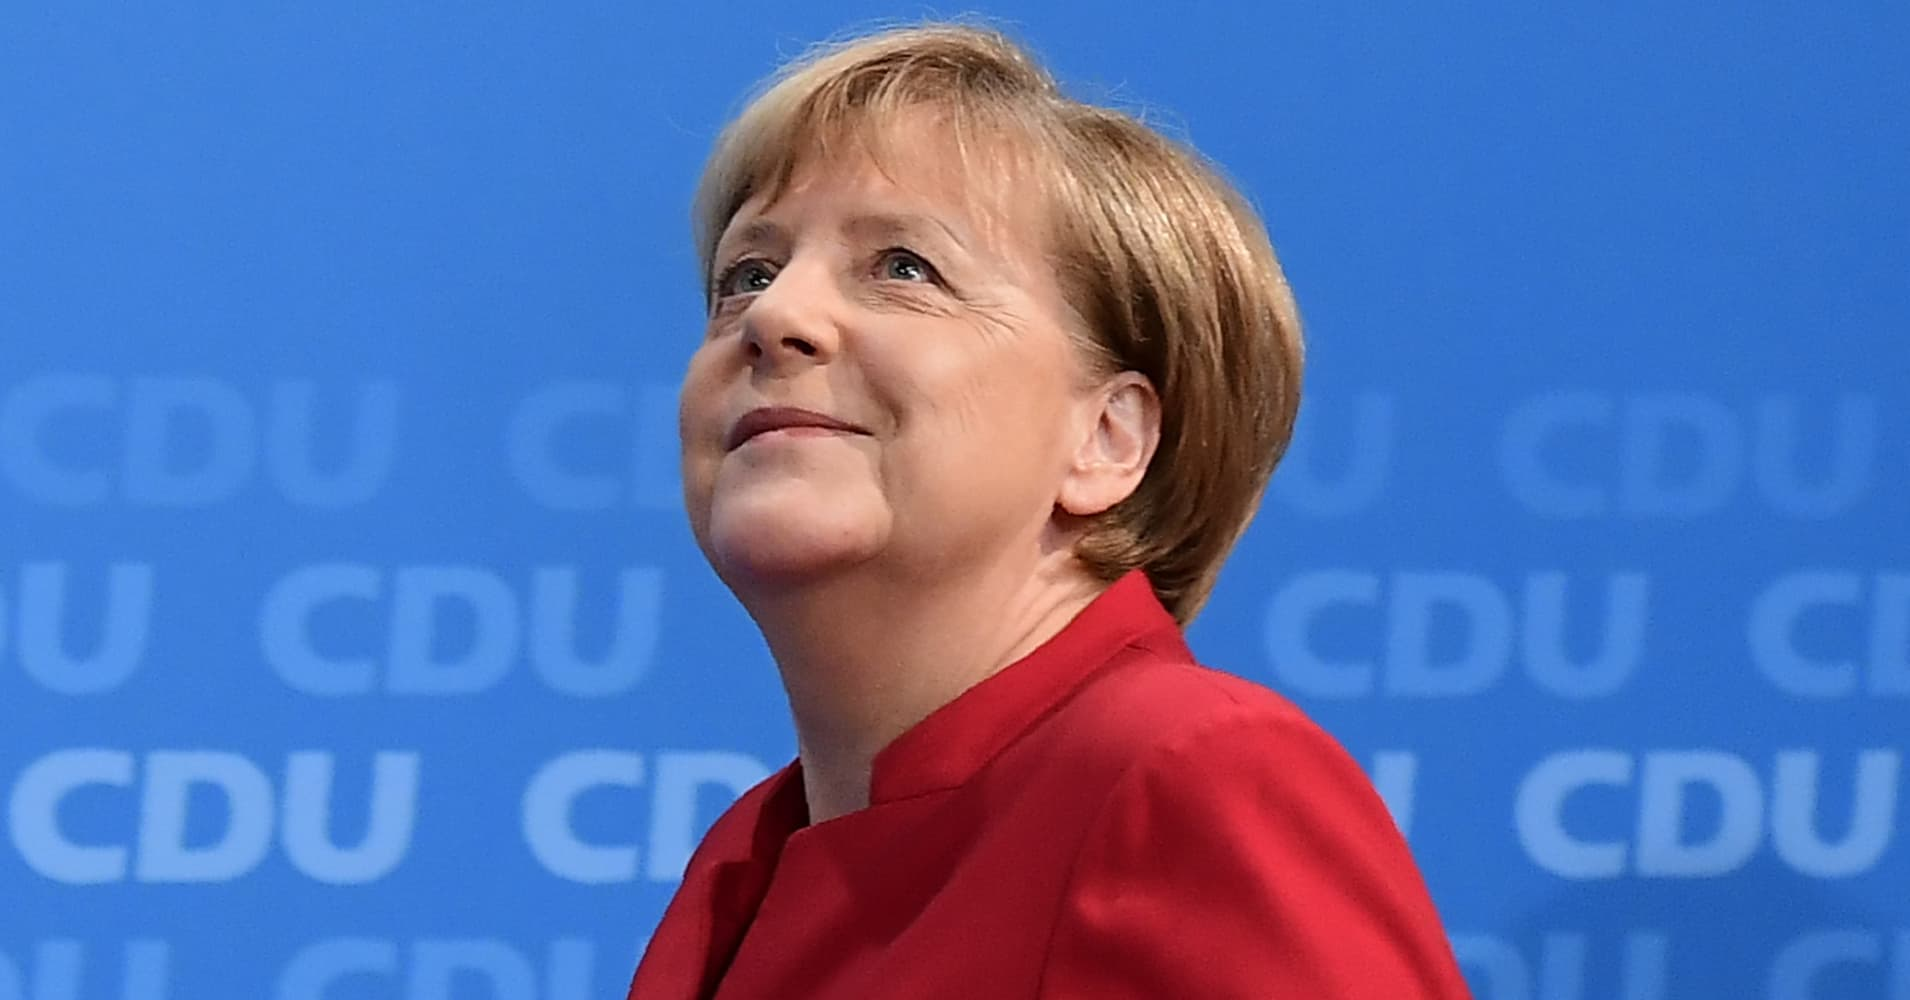 Angela Merkel loses popular support ahead of German election — these are her key opponents